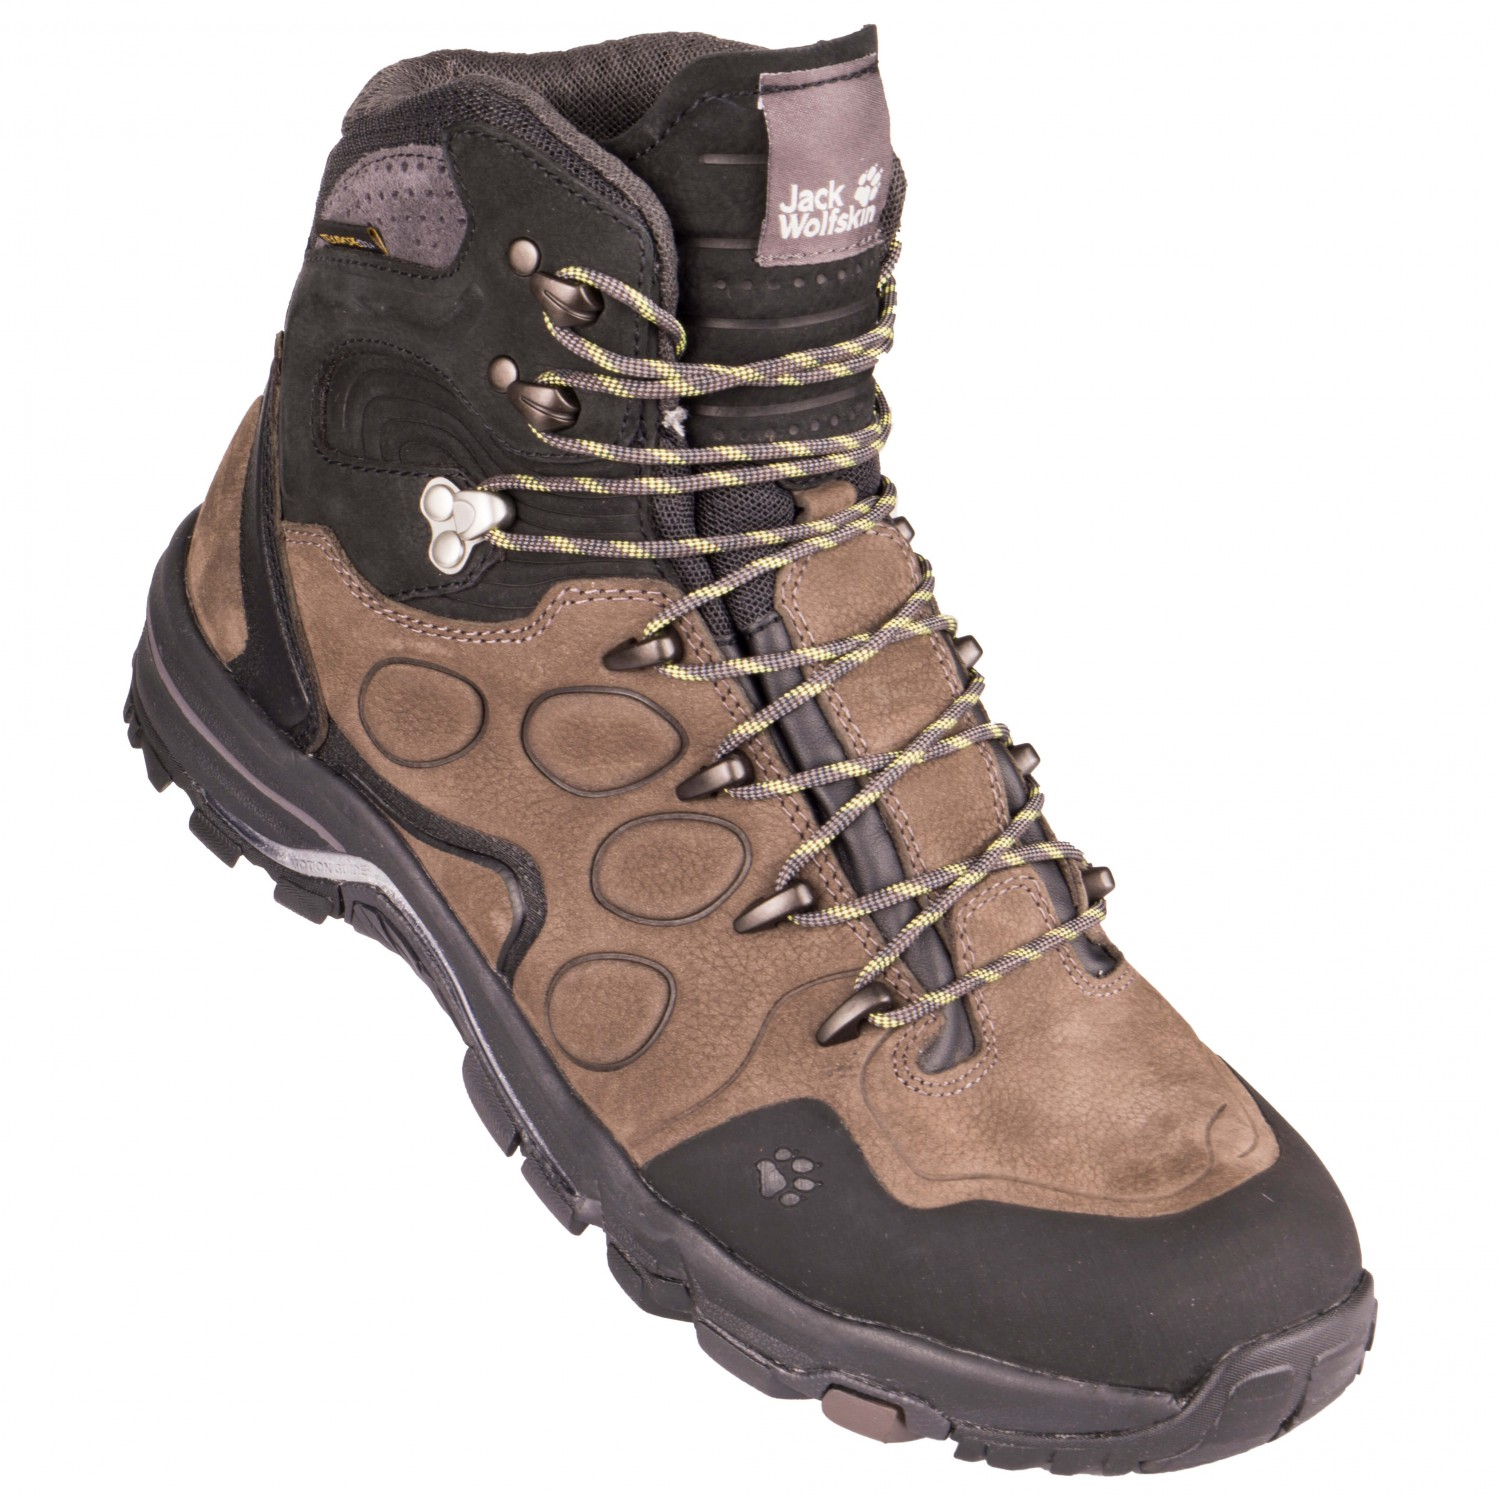 Jack Wolfskin Altiplano Prime Texapore Mid Walking boots